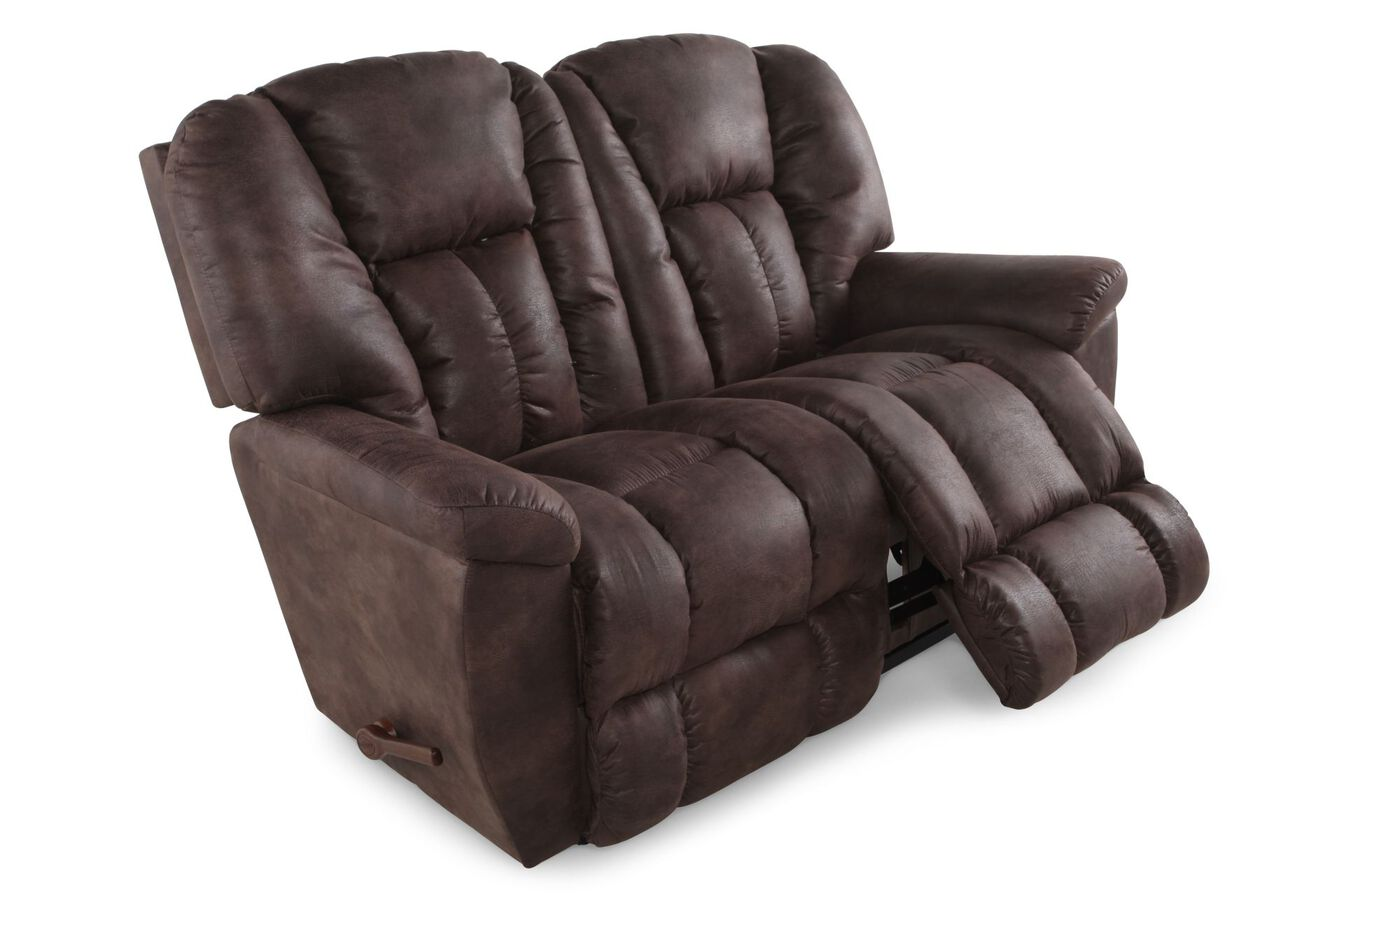 La Z Boy Maverick Sepia Reclining Loveseat Mathis Brothers Furniture